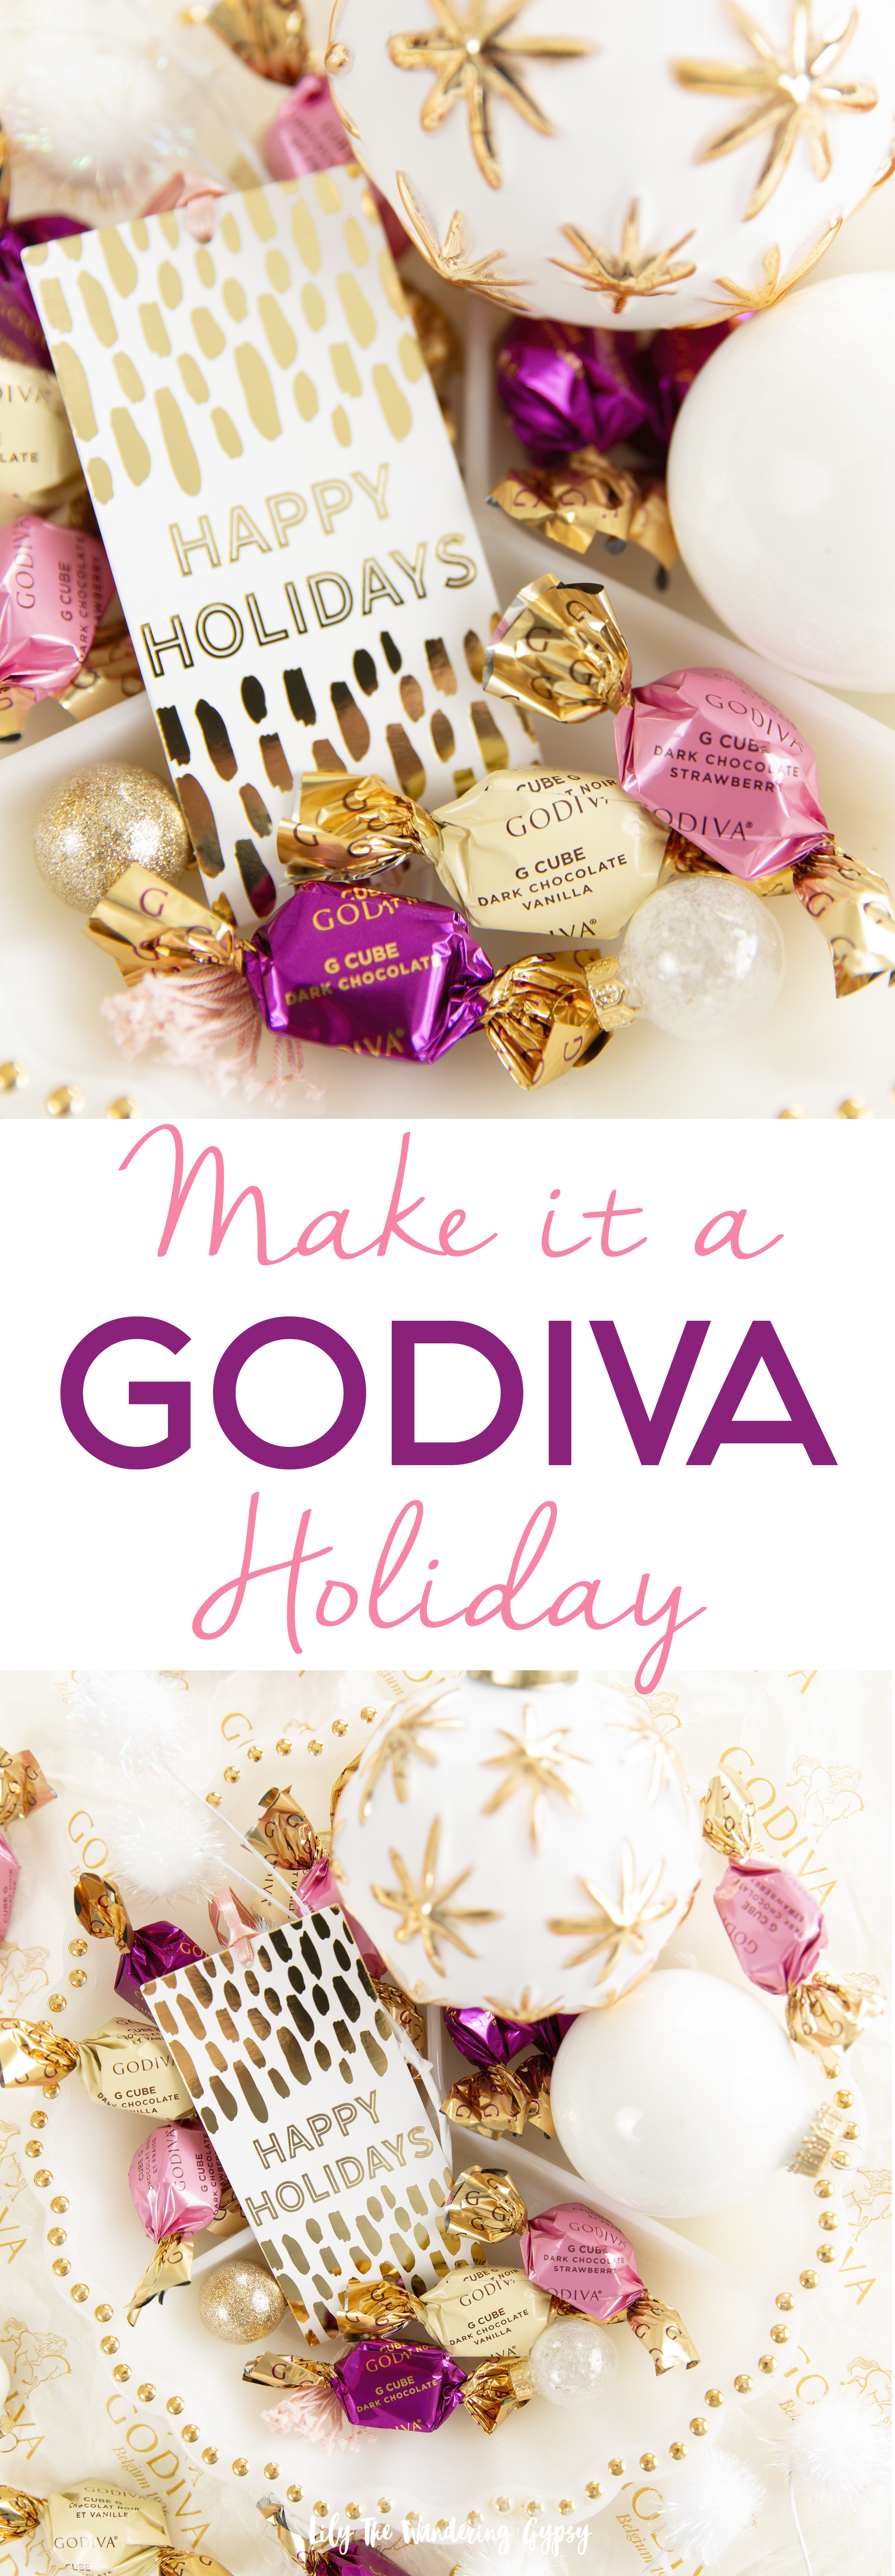 Make It A Godiva Holiday! Godiva G Cubes